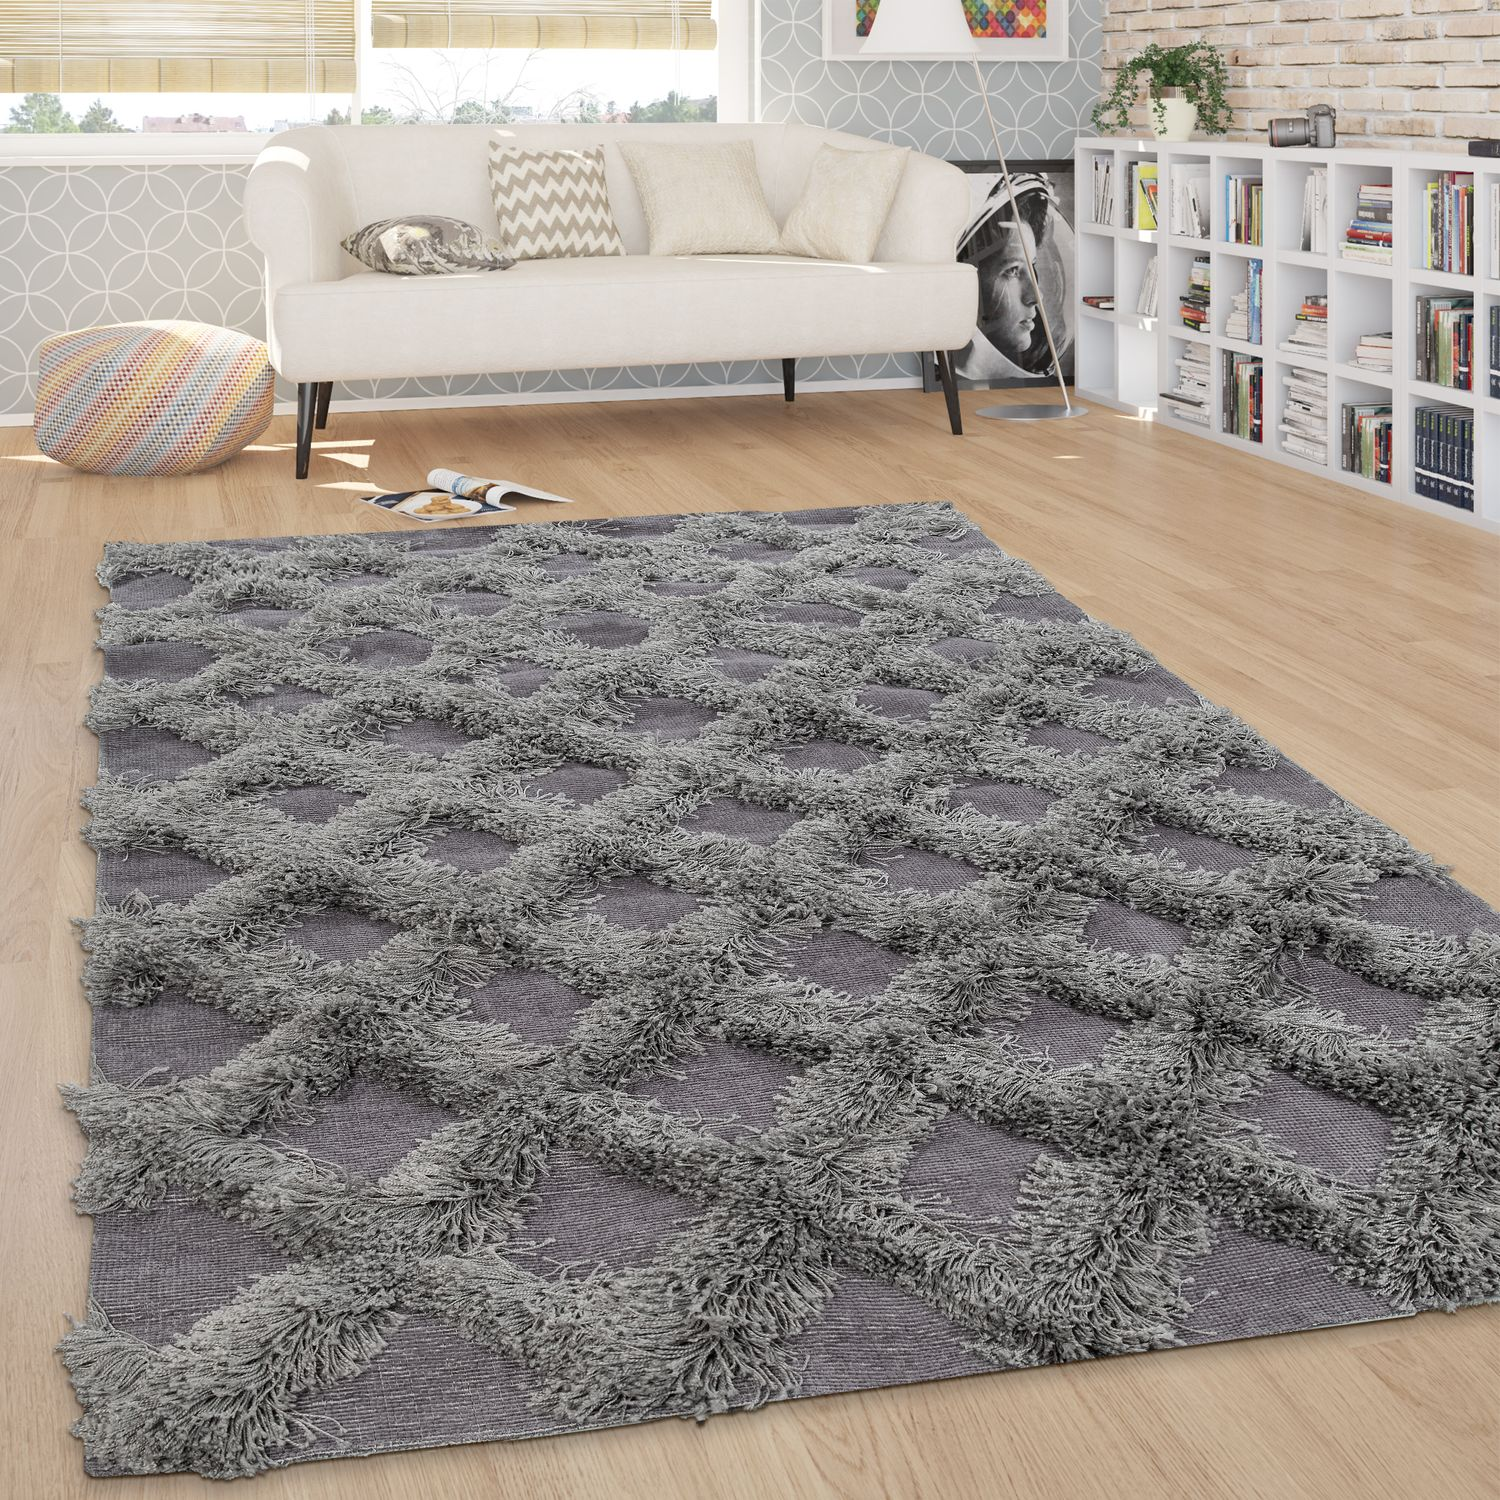 Tapis Salon Détails Sur Tapis Salon Shaggy Poils Longs Losanges Carreaux Scandinave Uni Gris